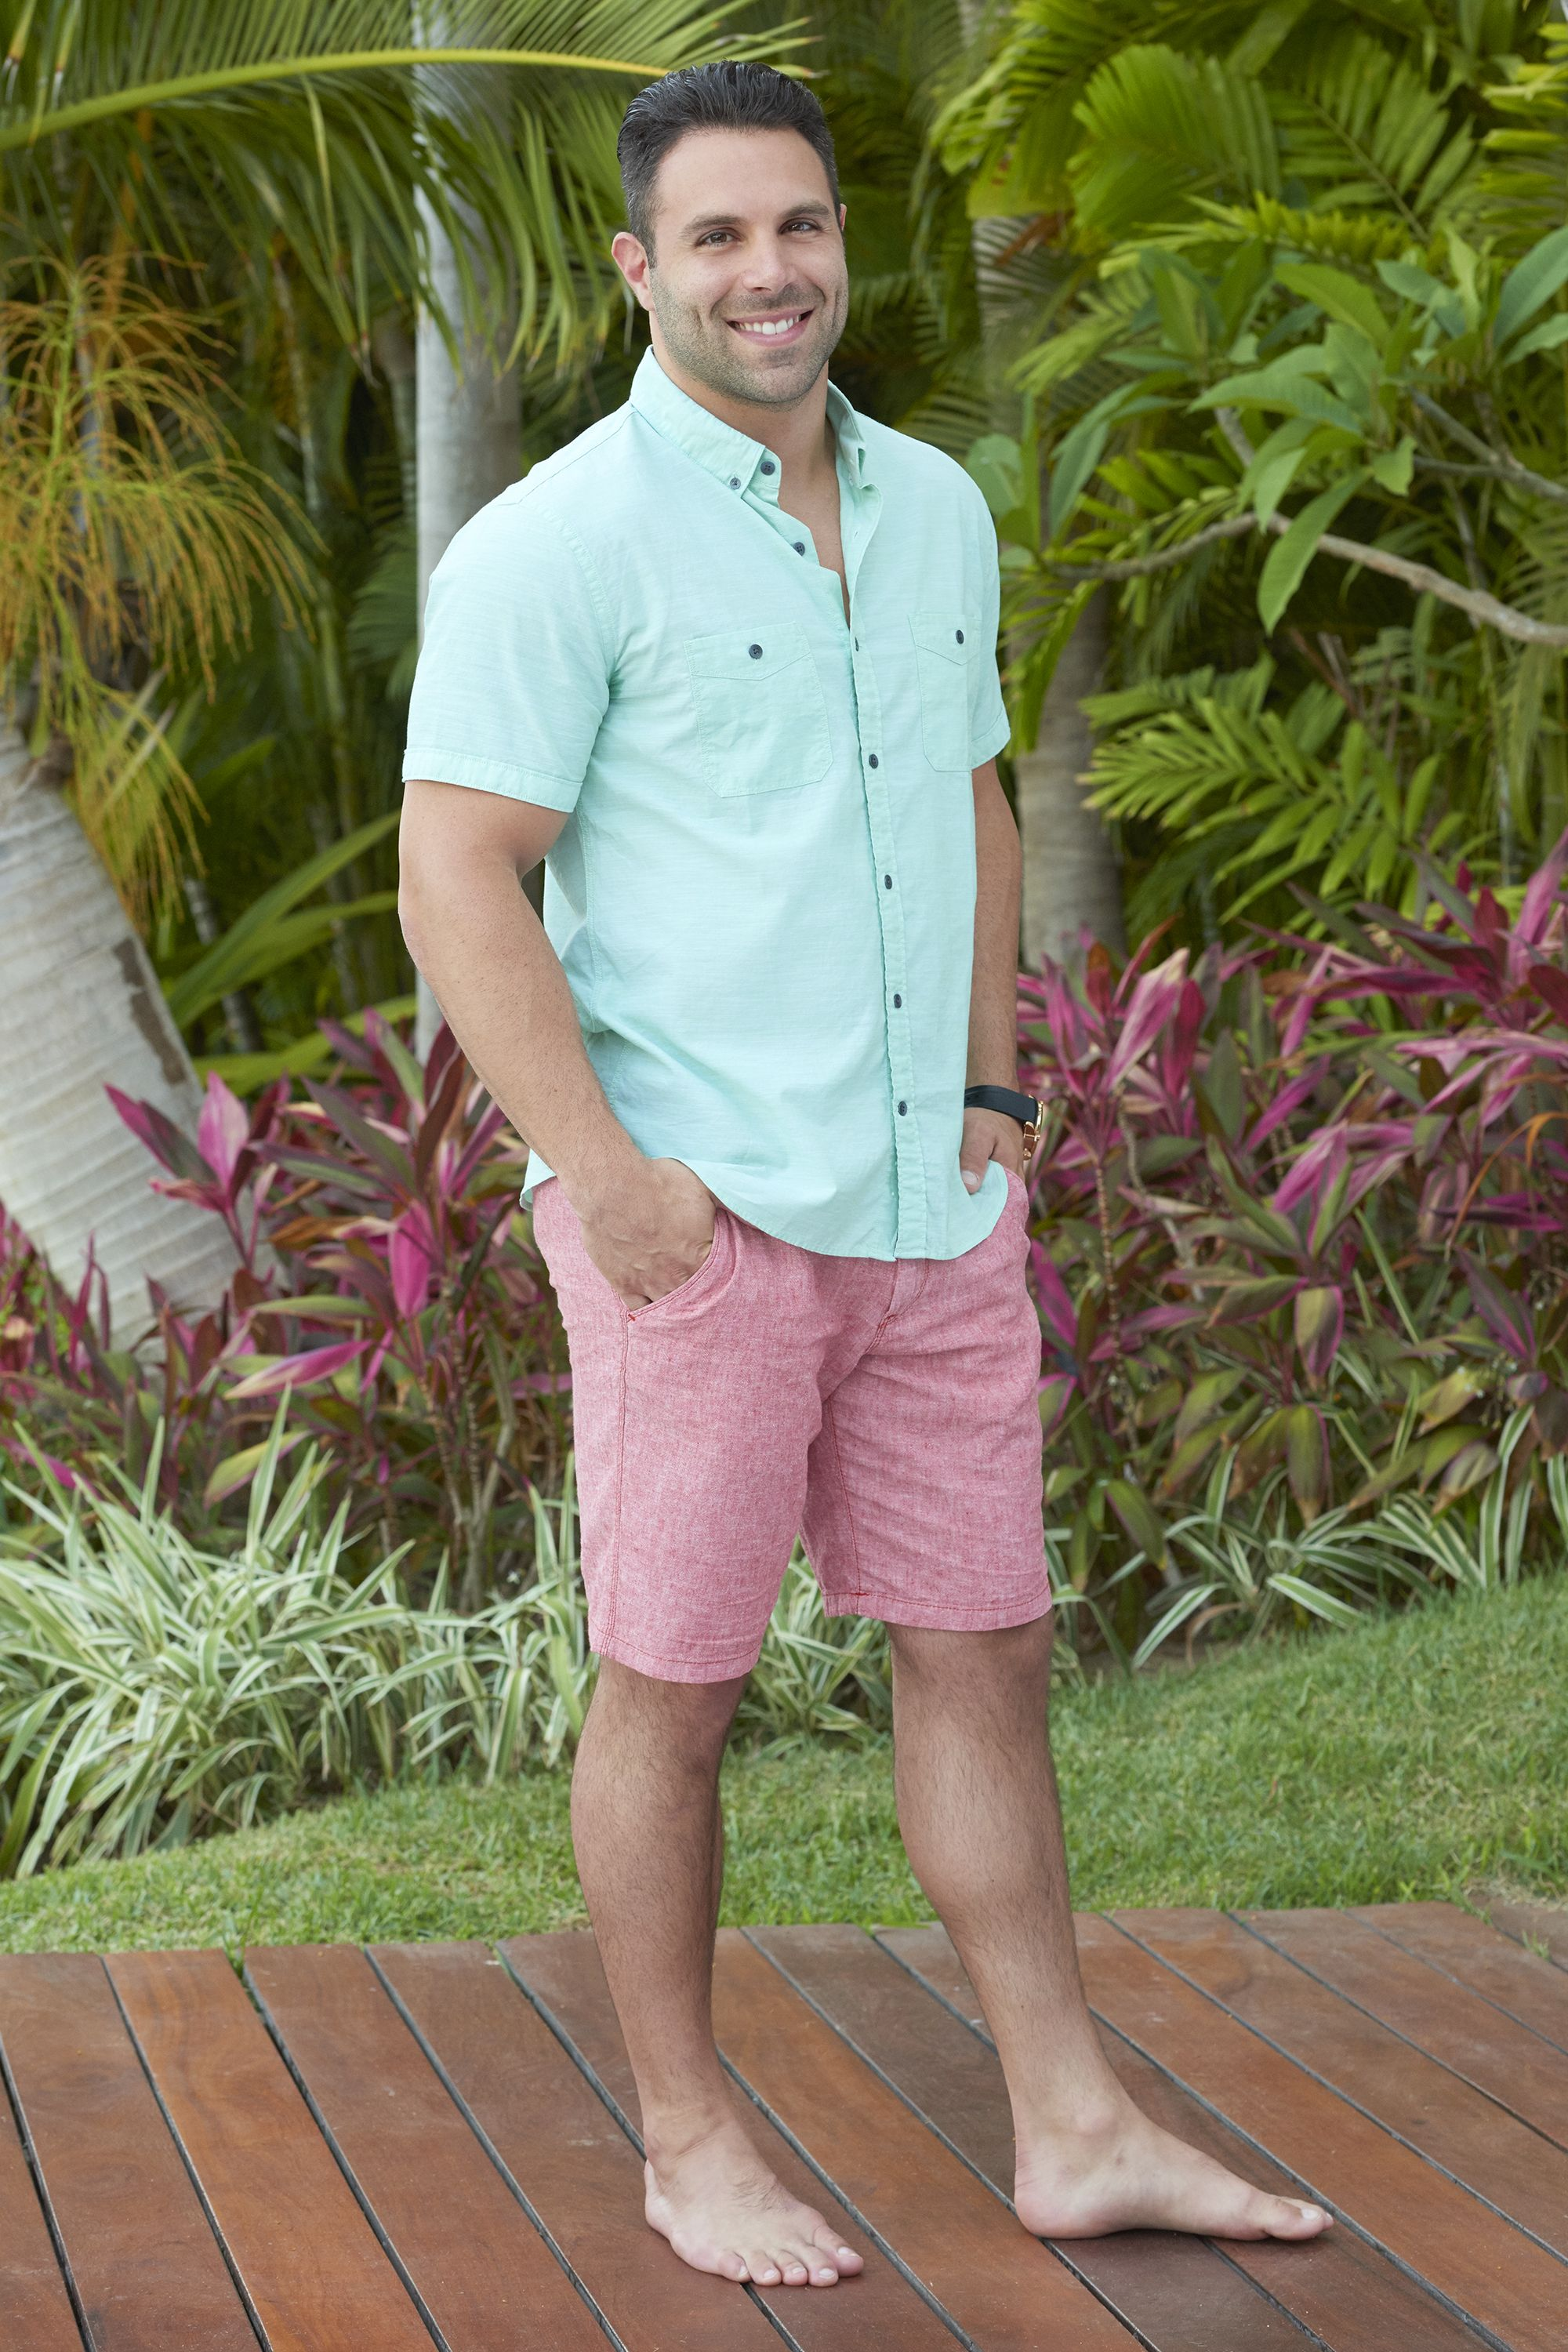 Pin For Later: Bachelor In Paradise Lineup: Here Are The Sexy Franchise  Favorites Playing Mikey Tenerelli